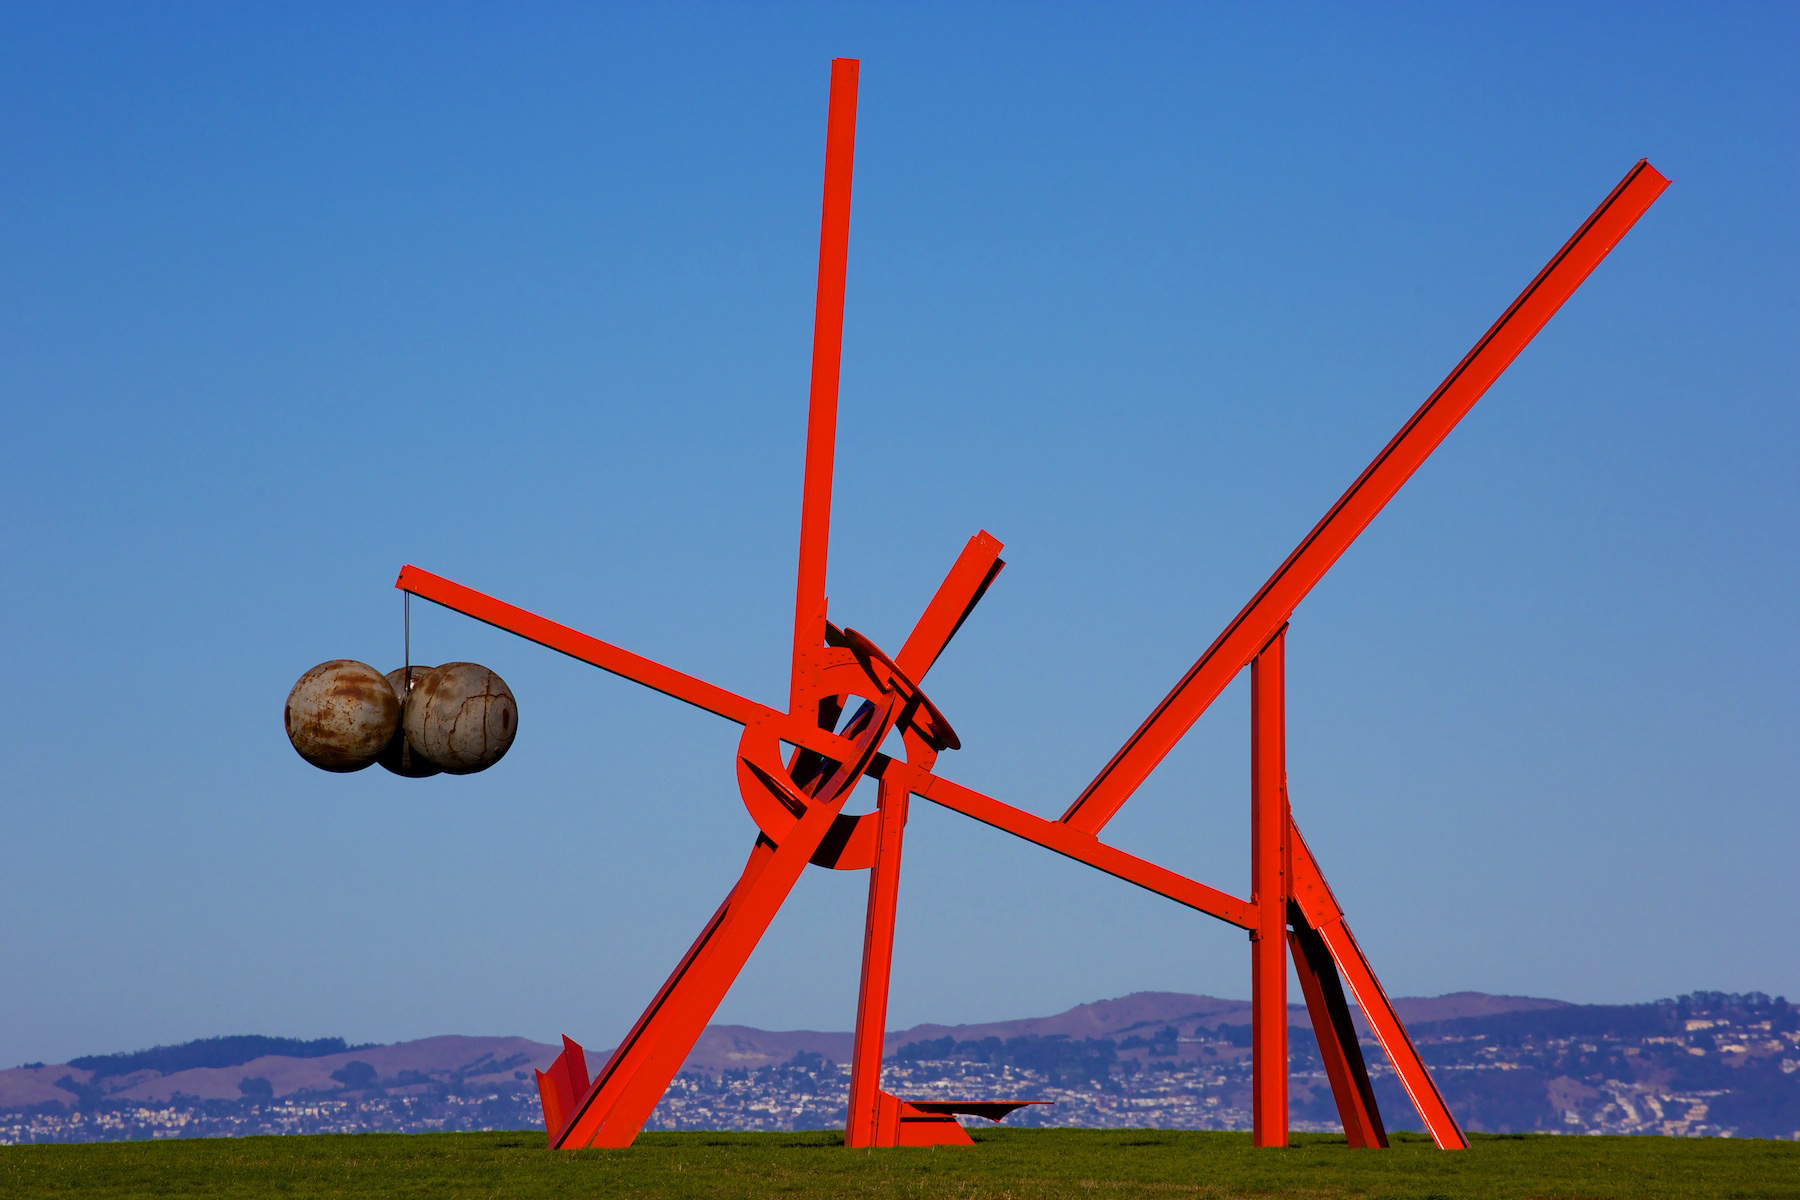 Mark DiSuvero Sculpture, Crissy Field, San Francisco